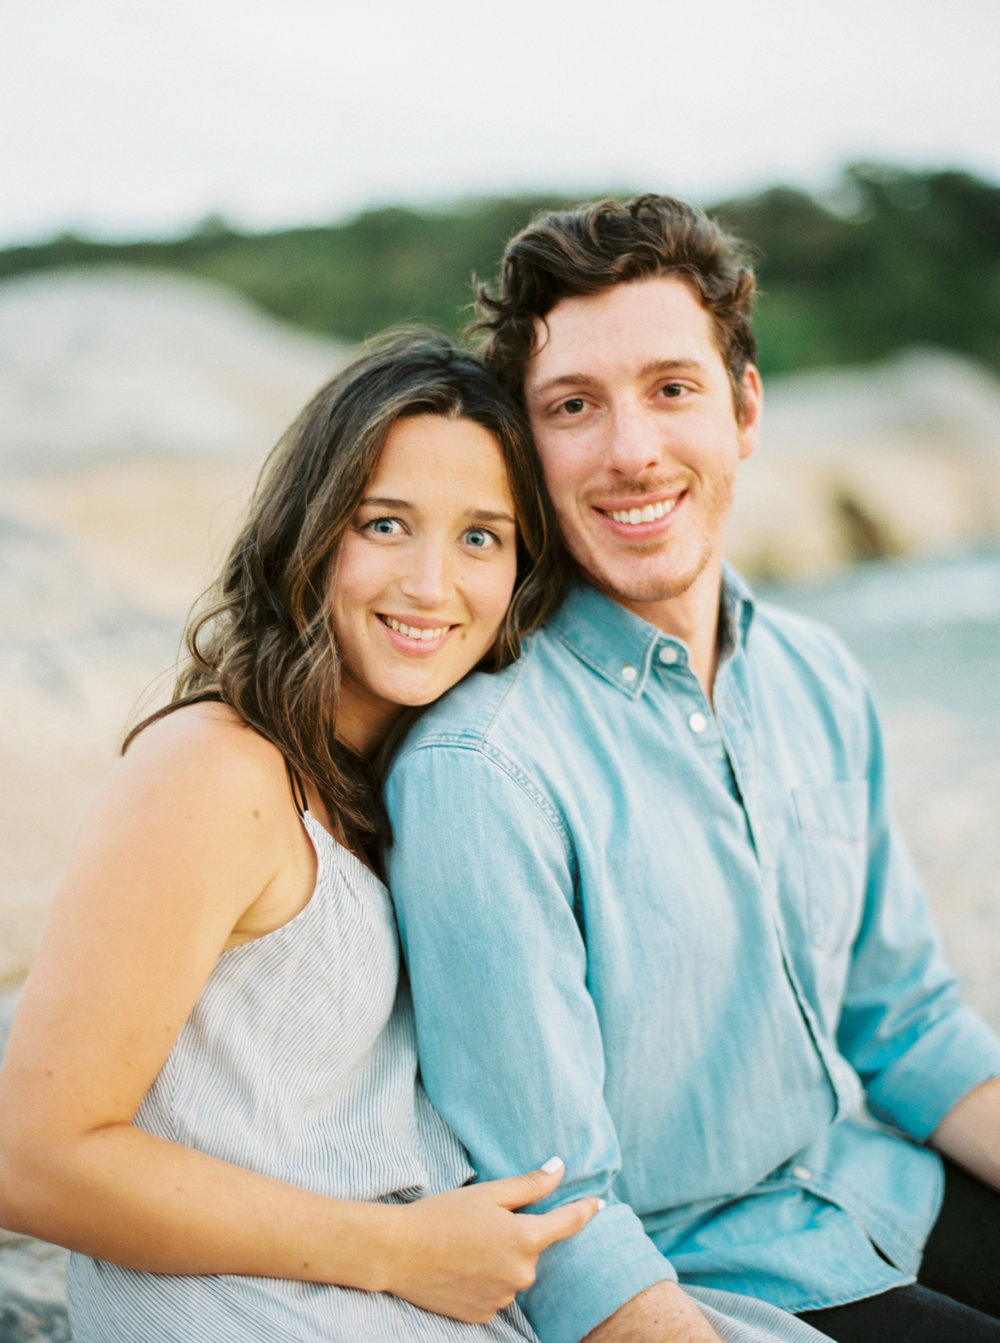 Engagement Session Outfits-29.jpg